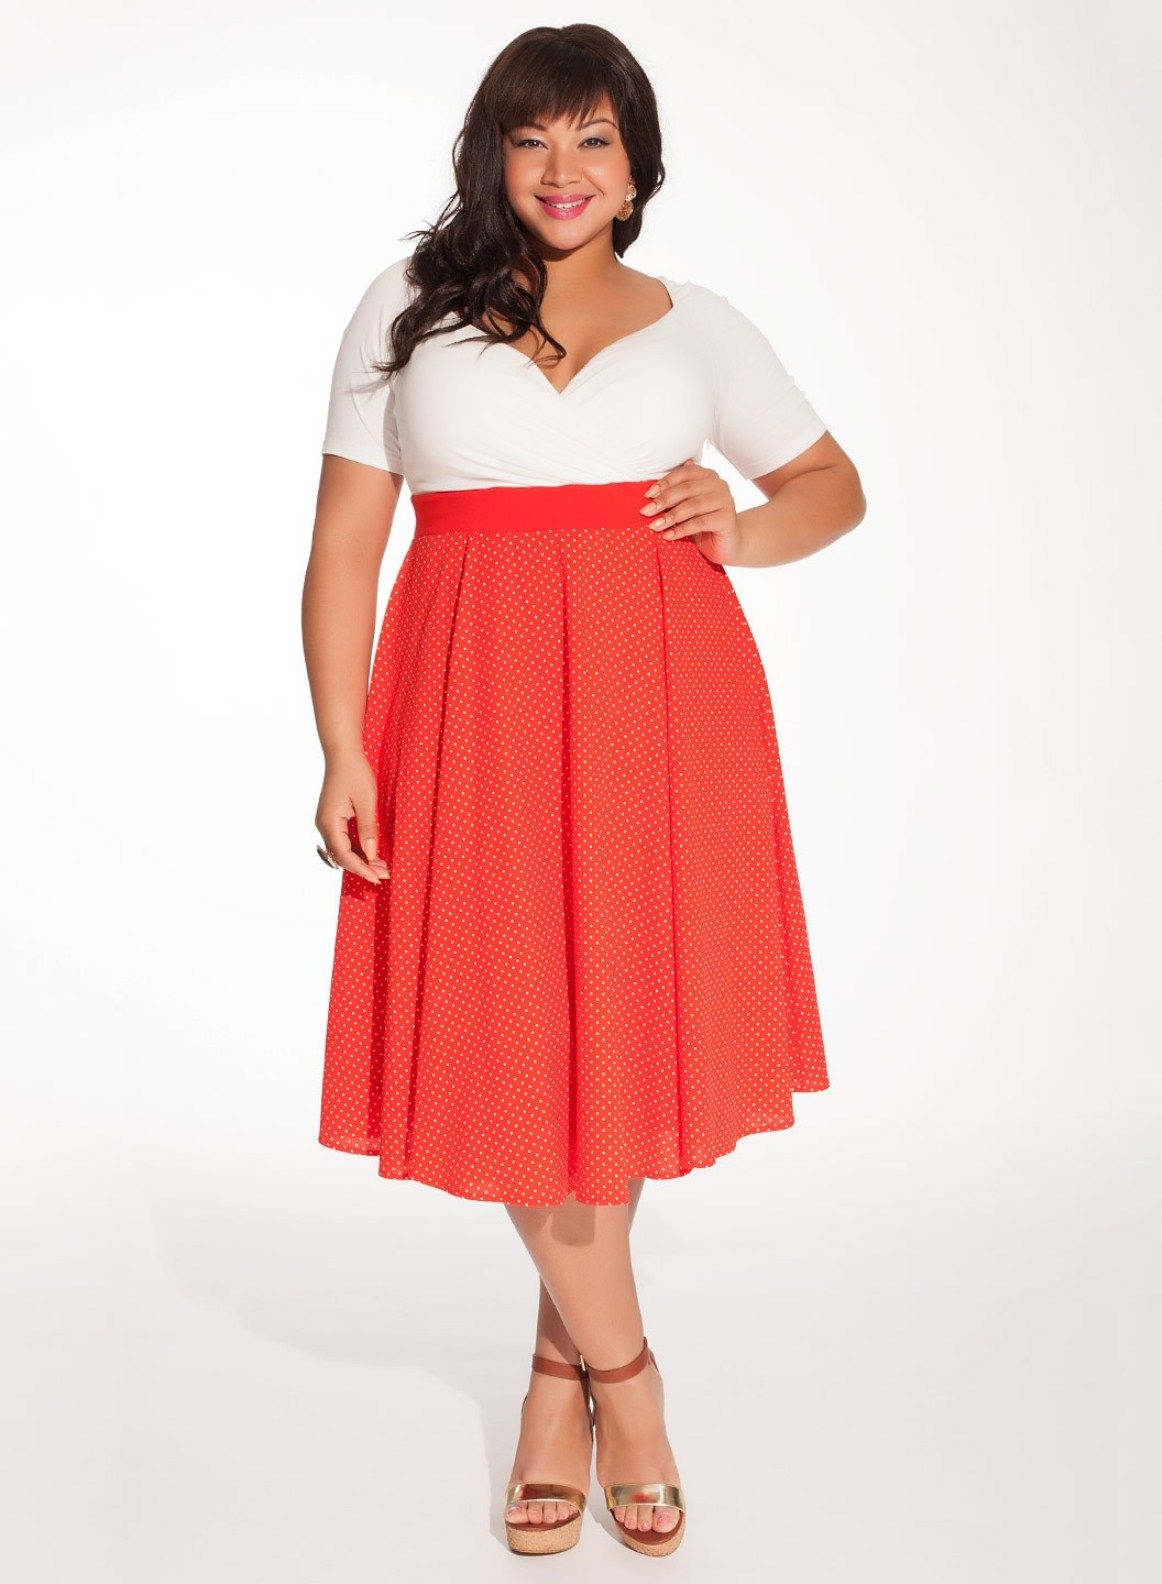 Plus Size Summer Clothes Plus Size Wedding Guest Dresses For